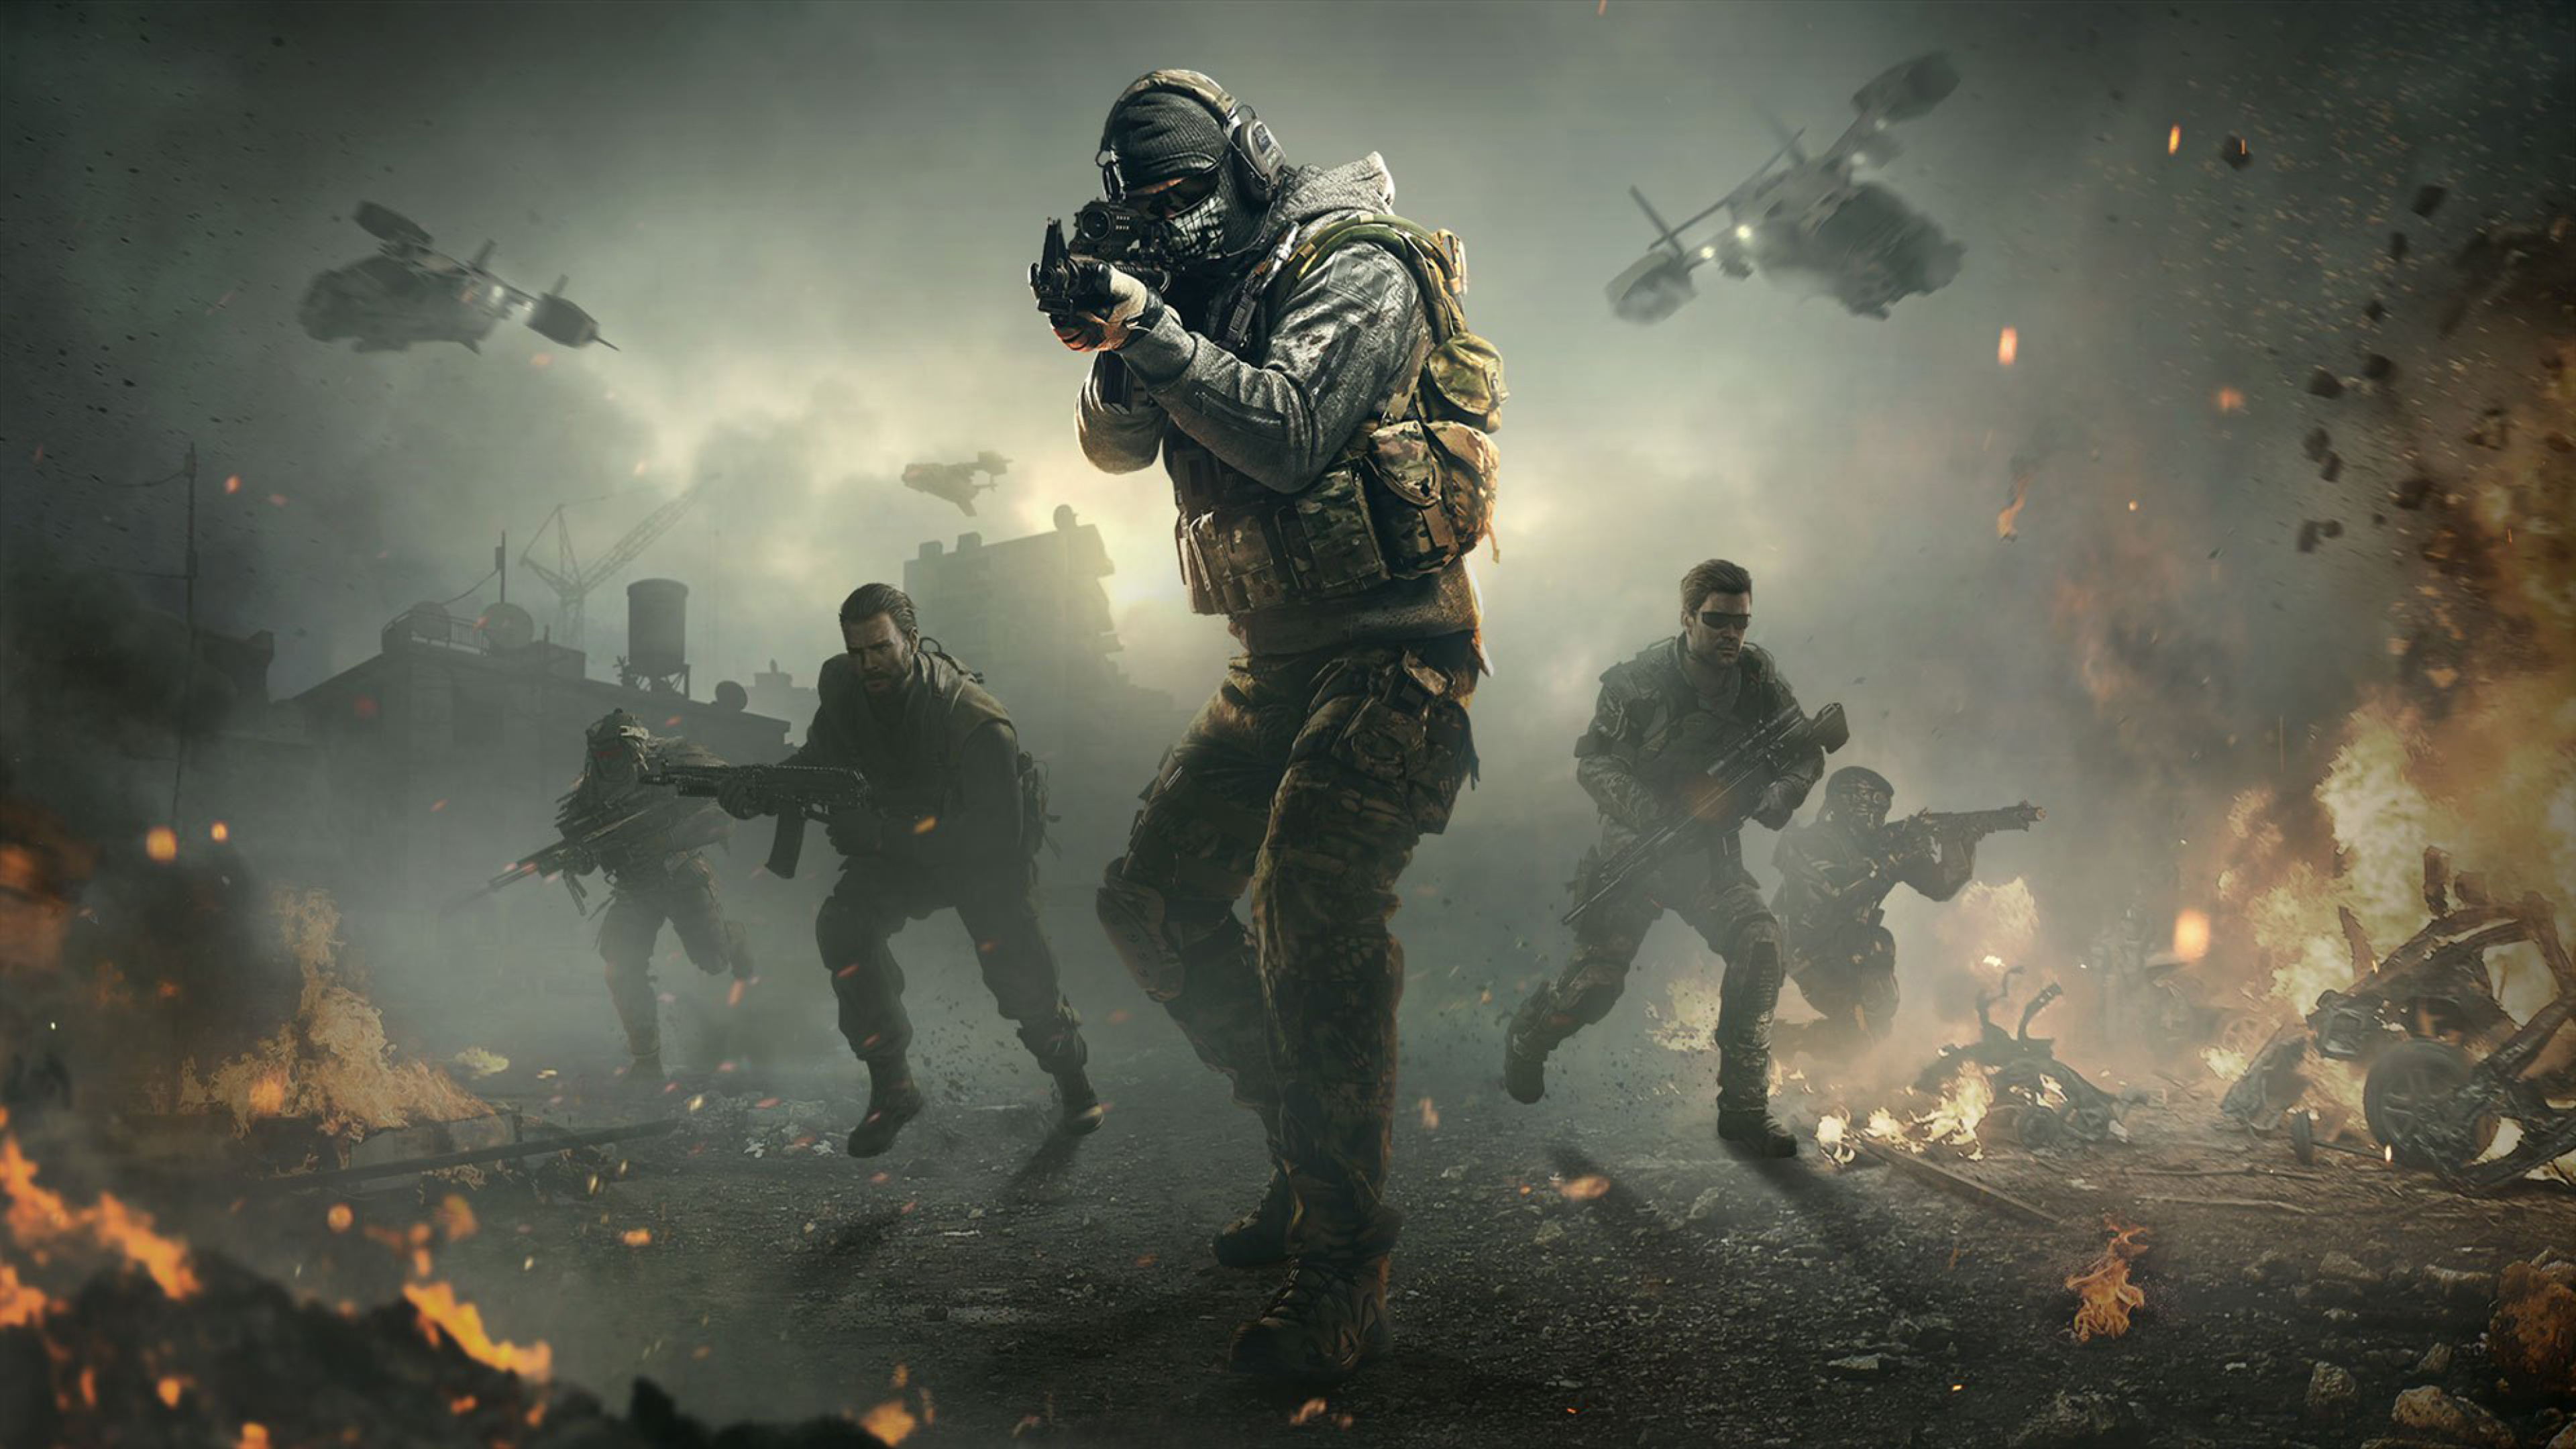 3840x2160 Call Of Duty Mobile 2019 4K Wallpaper, HD Games ...